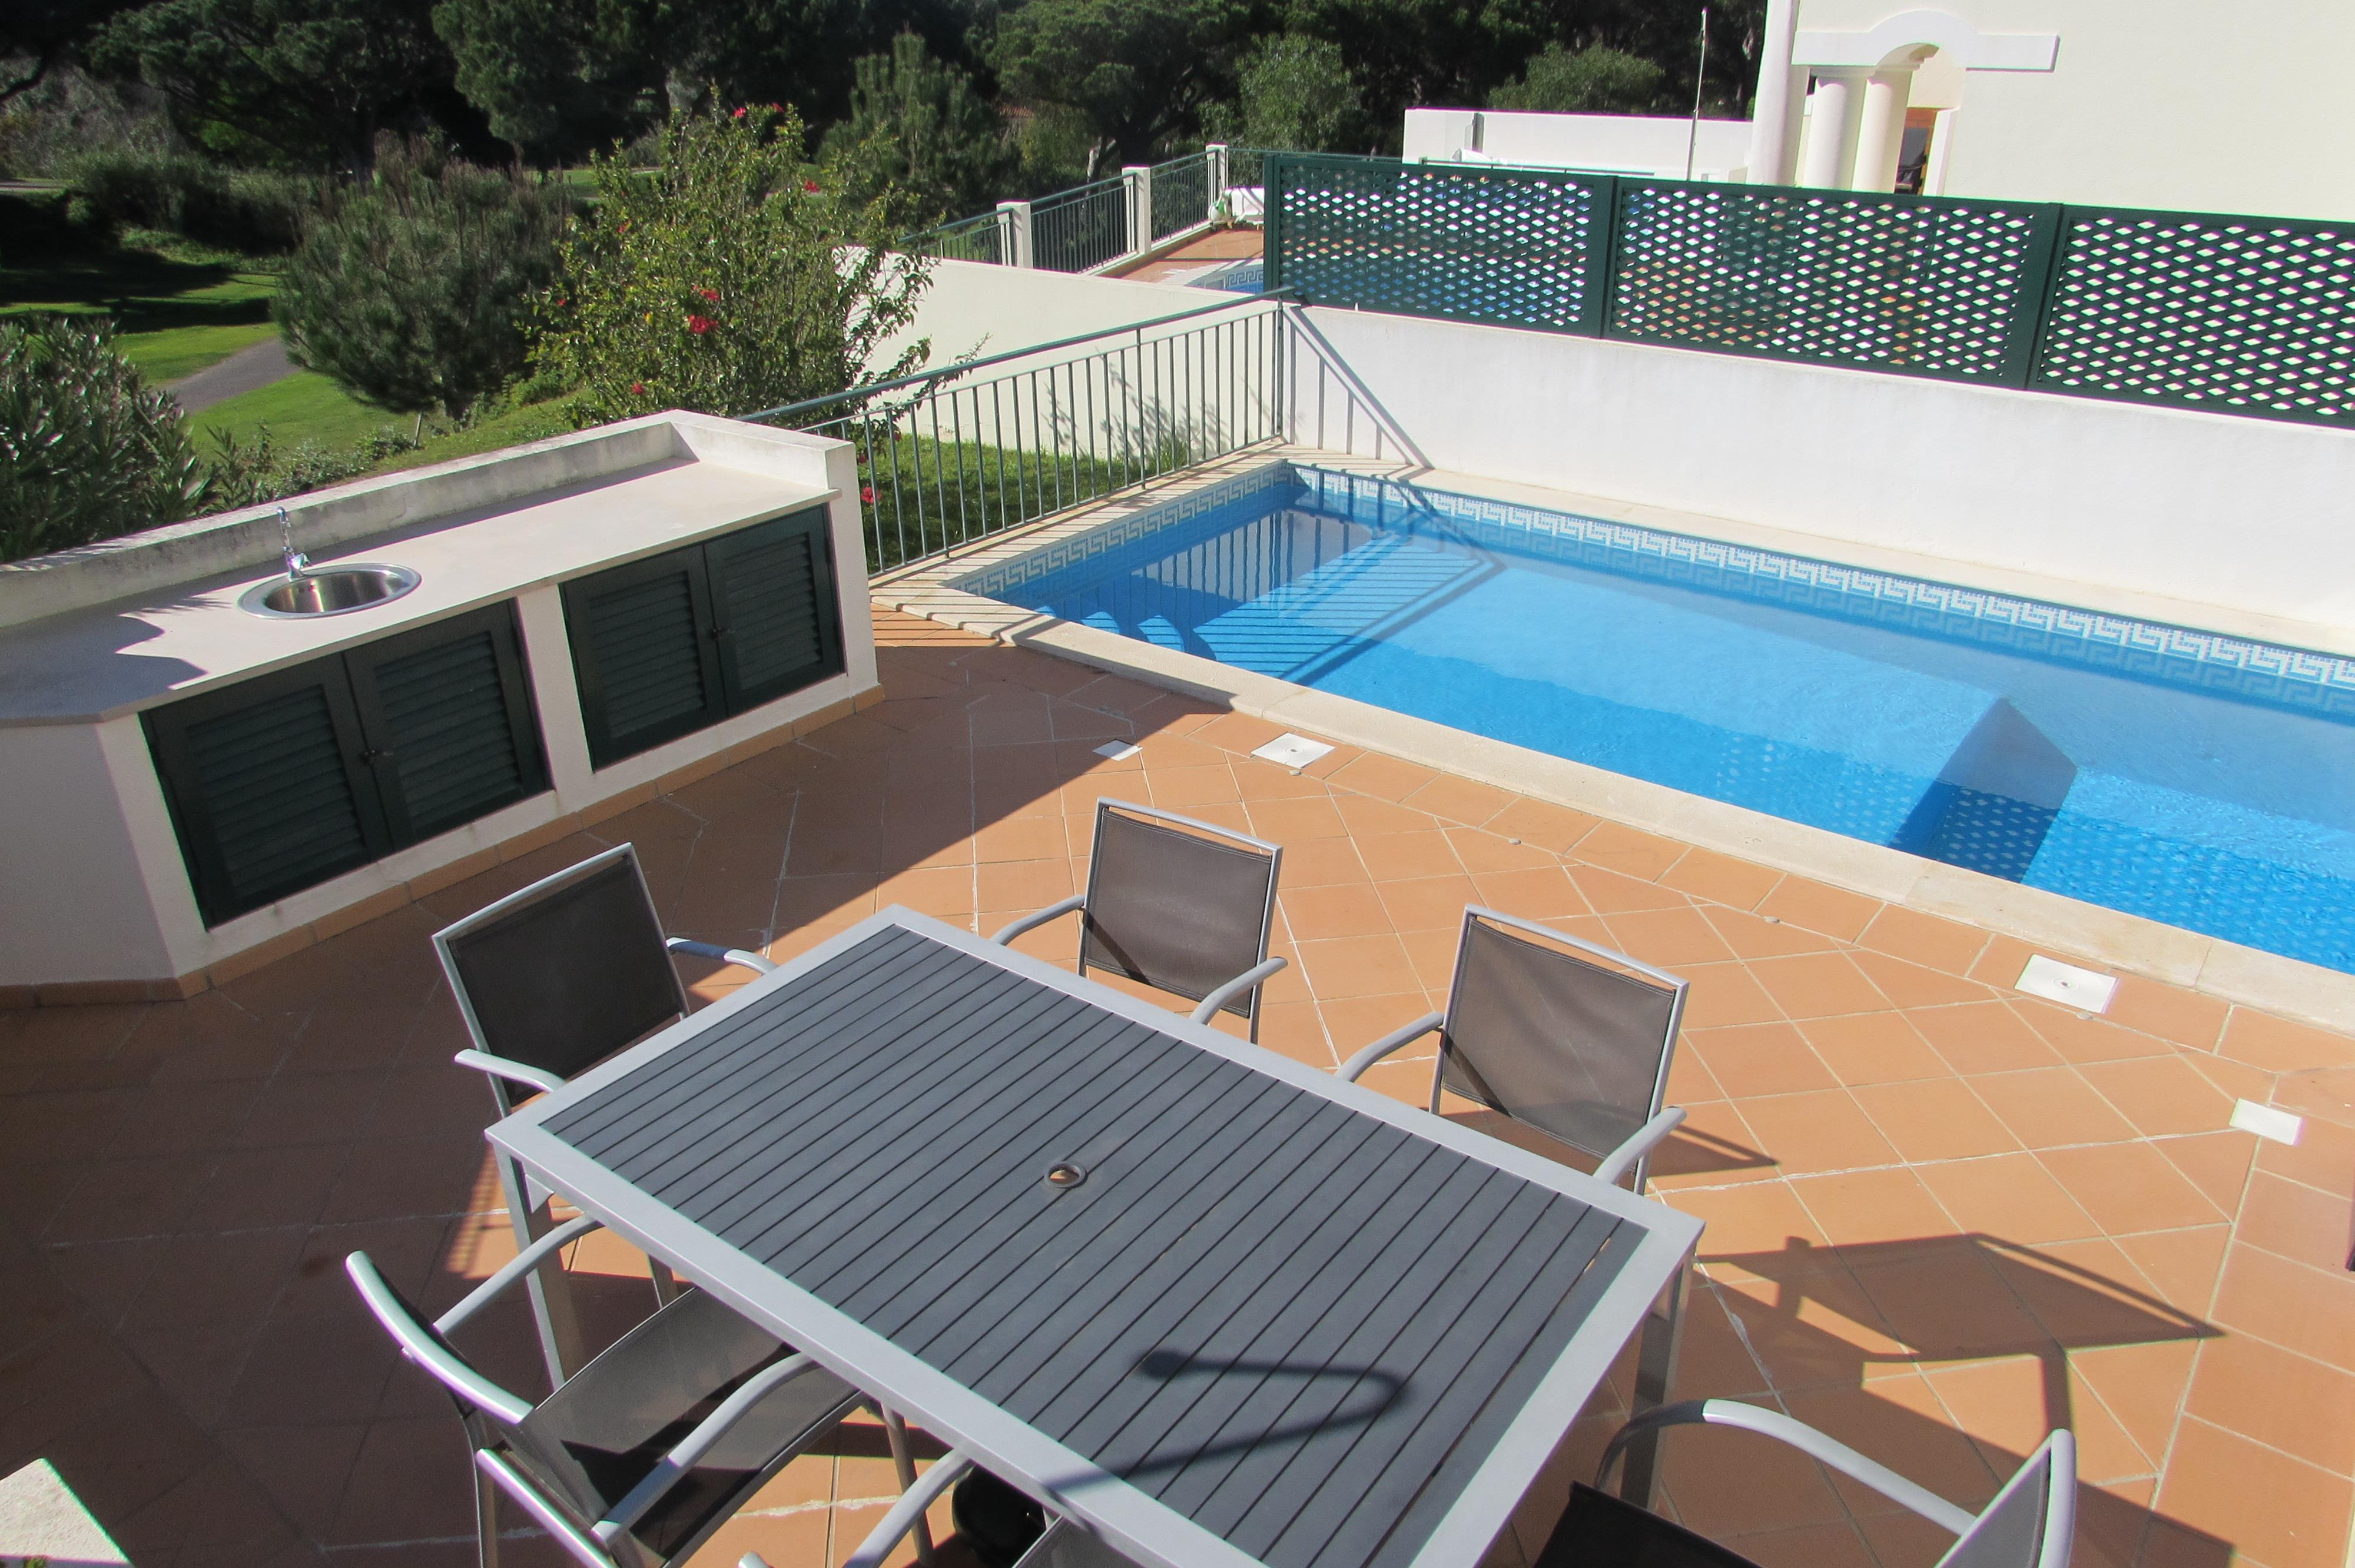 Single Family Home for Sale at Terraced house, 3 bedrooms, for Sale Loule, Algarve, 8135-011 Portugal